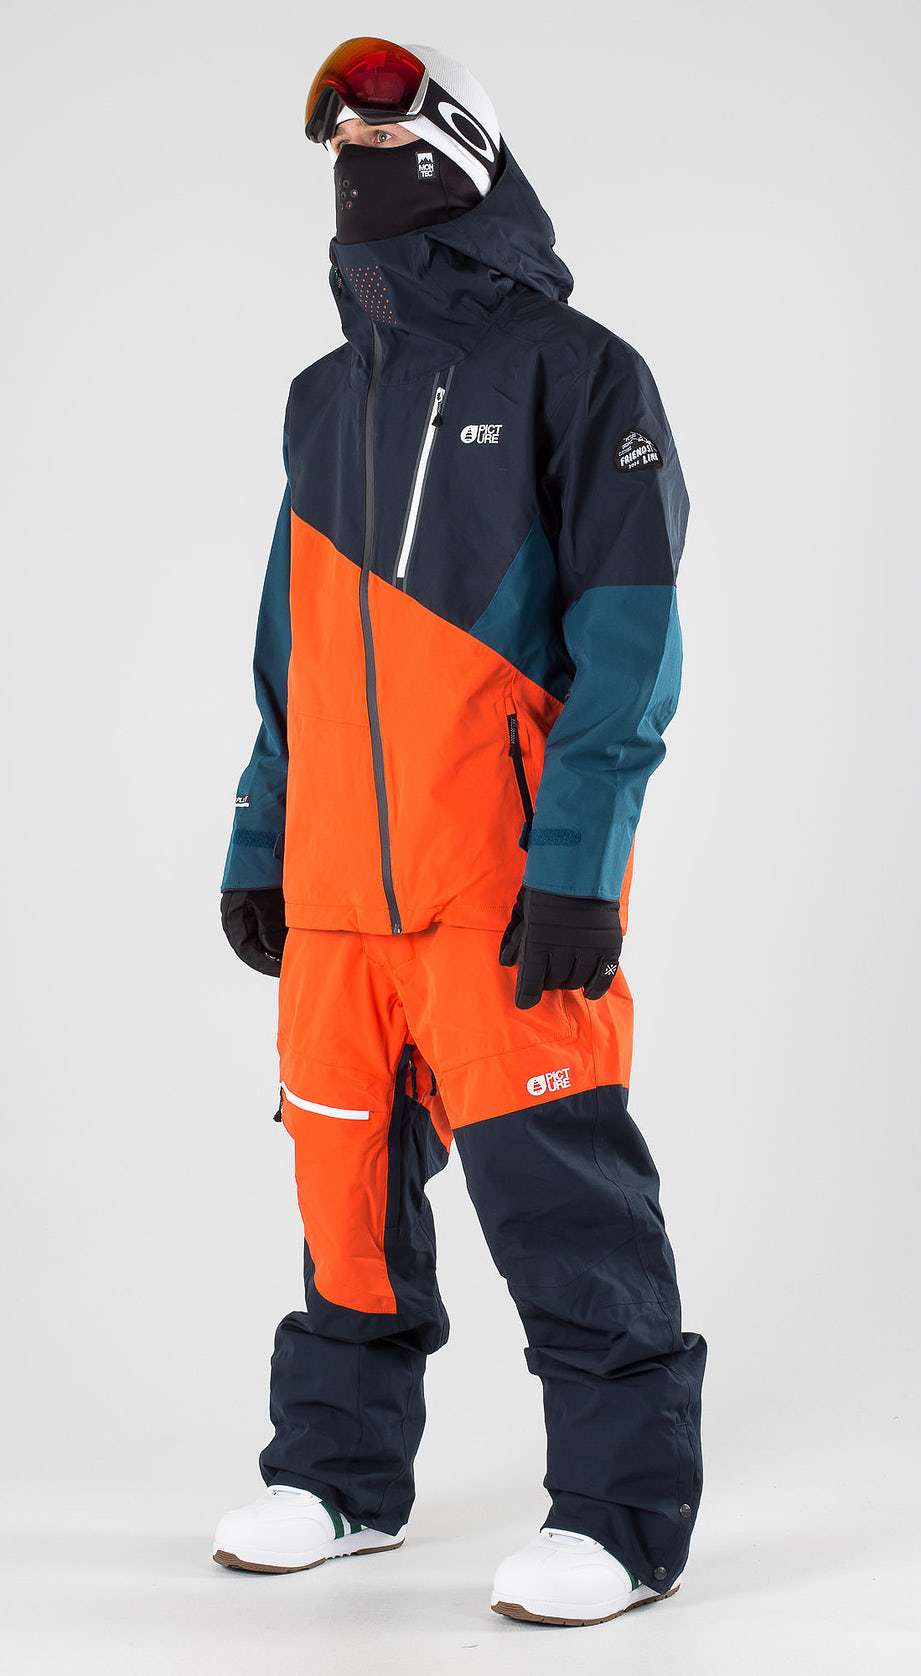 Picture Alpin Orange Dark Blue Snowboardkleidung Multi